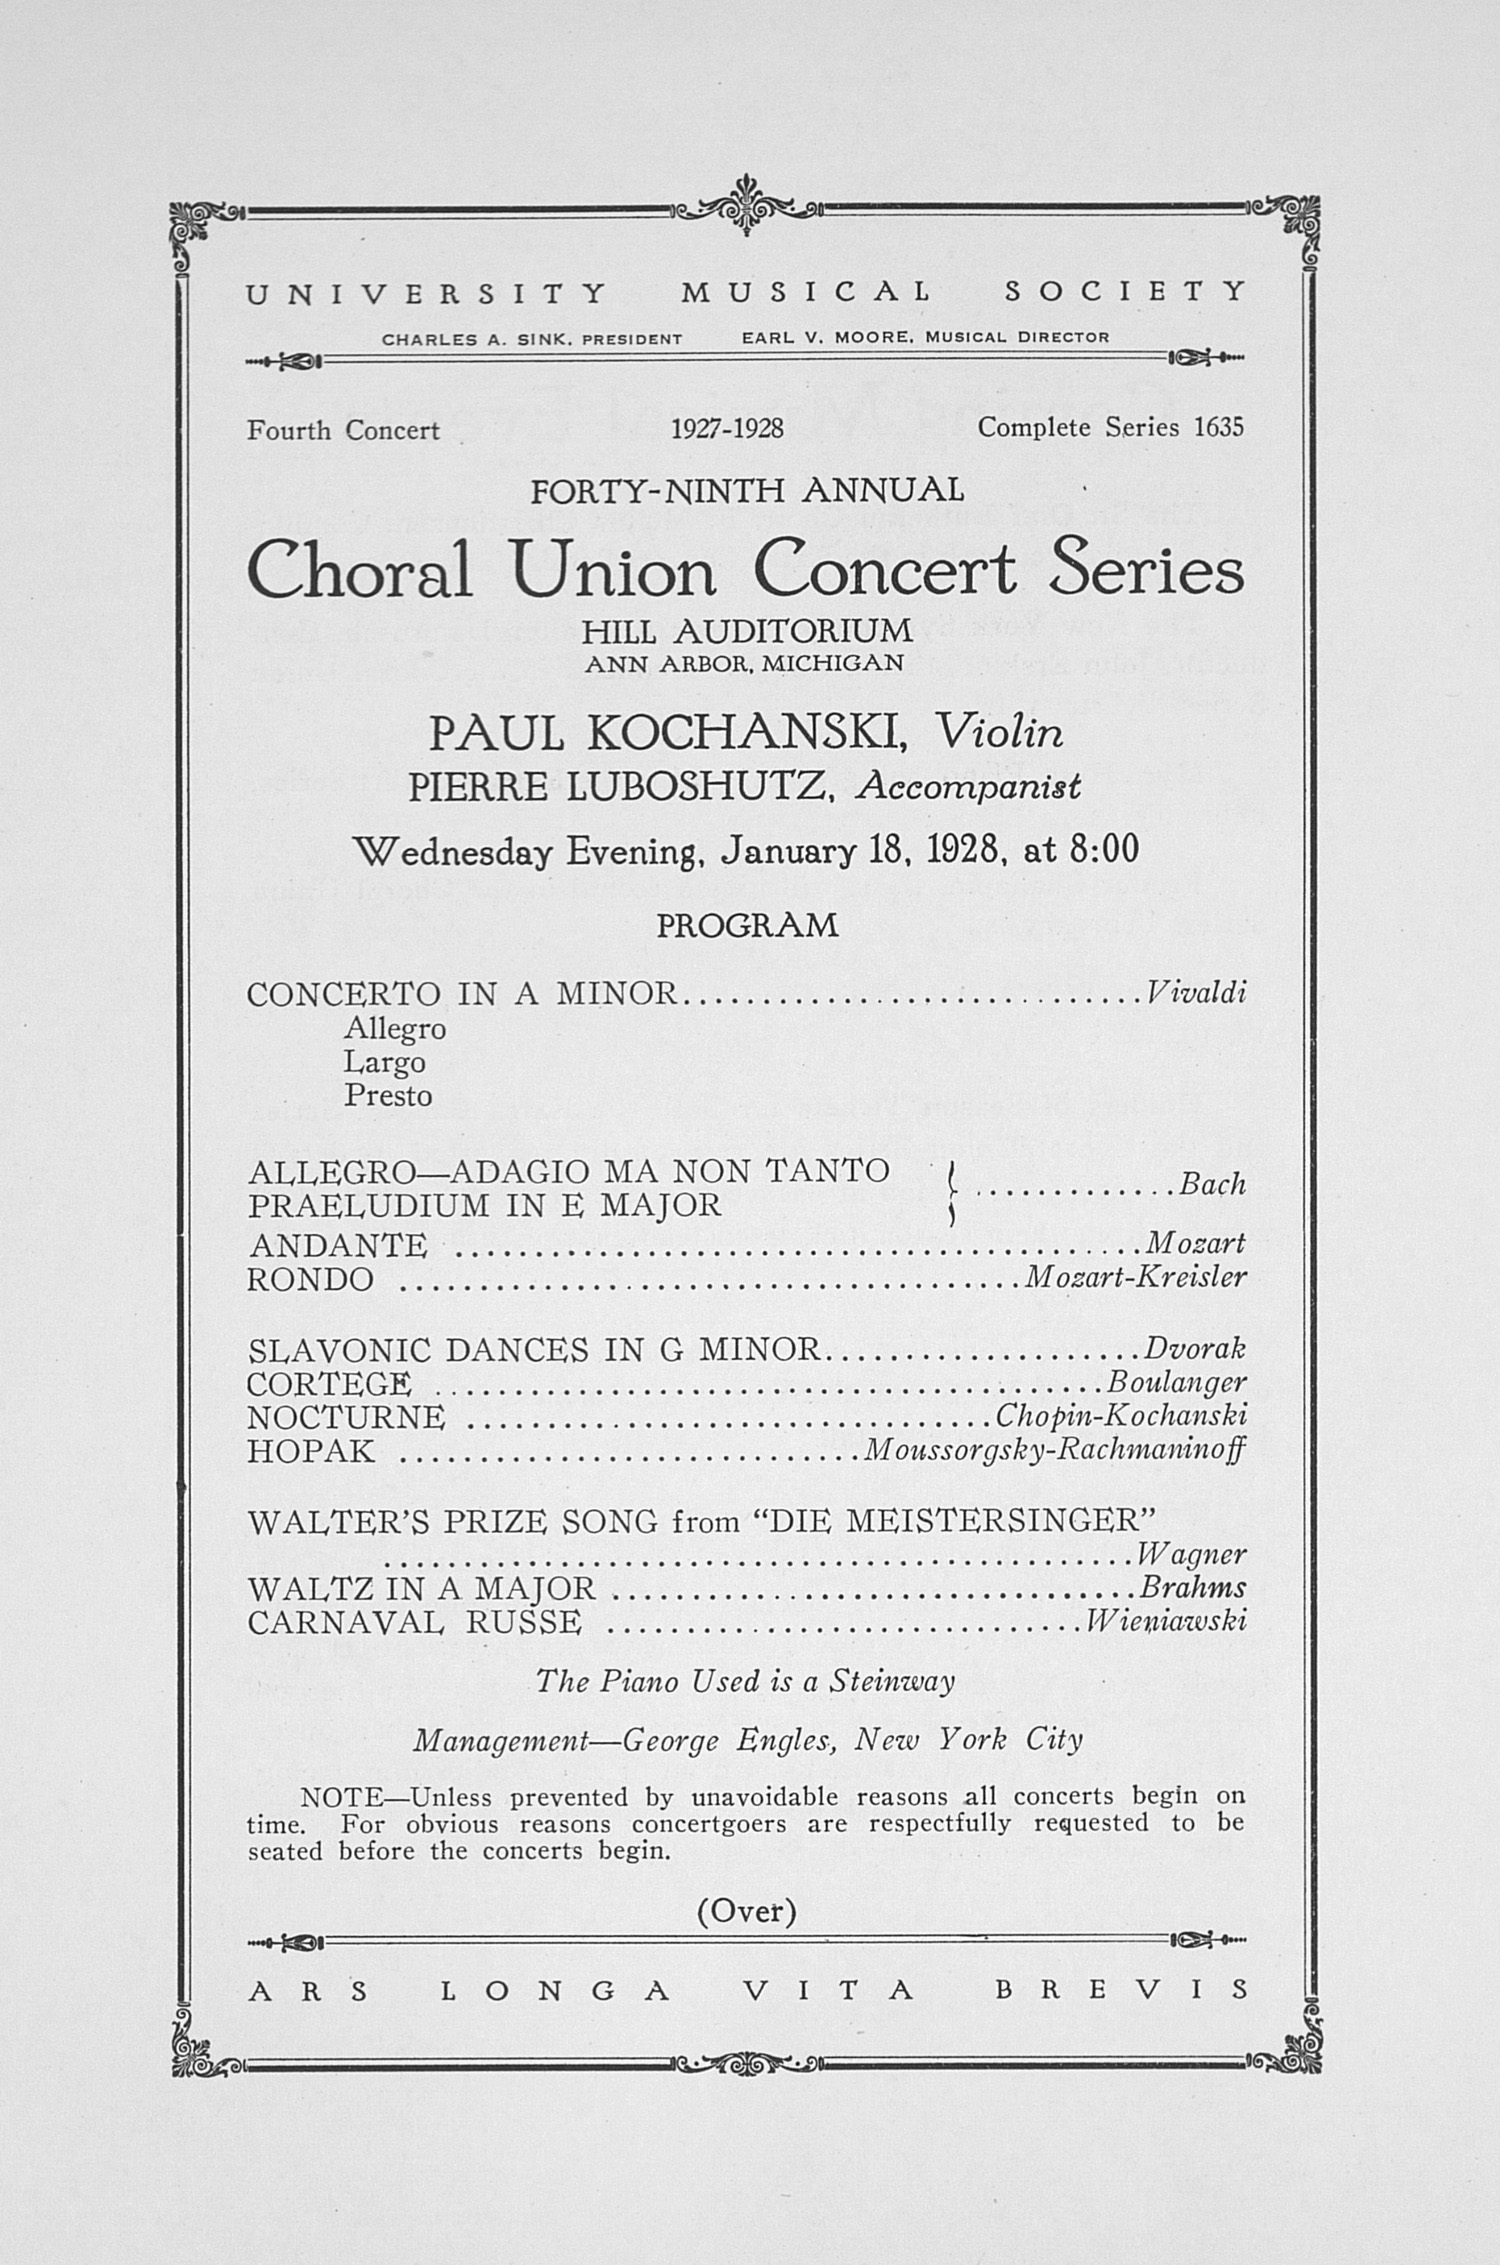 UMS Concert Program, January 18, 1928: Forty-ninth Annual Choral Union Concert Series -- Paul Kochanski image